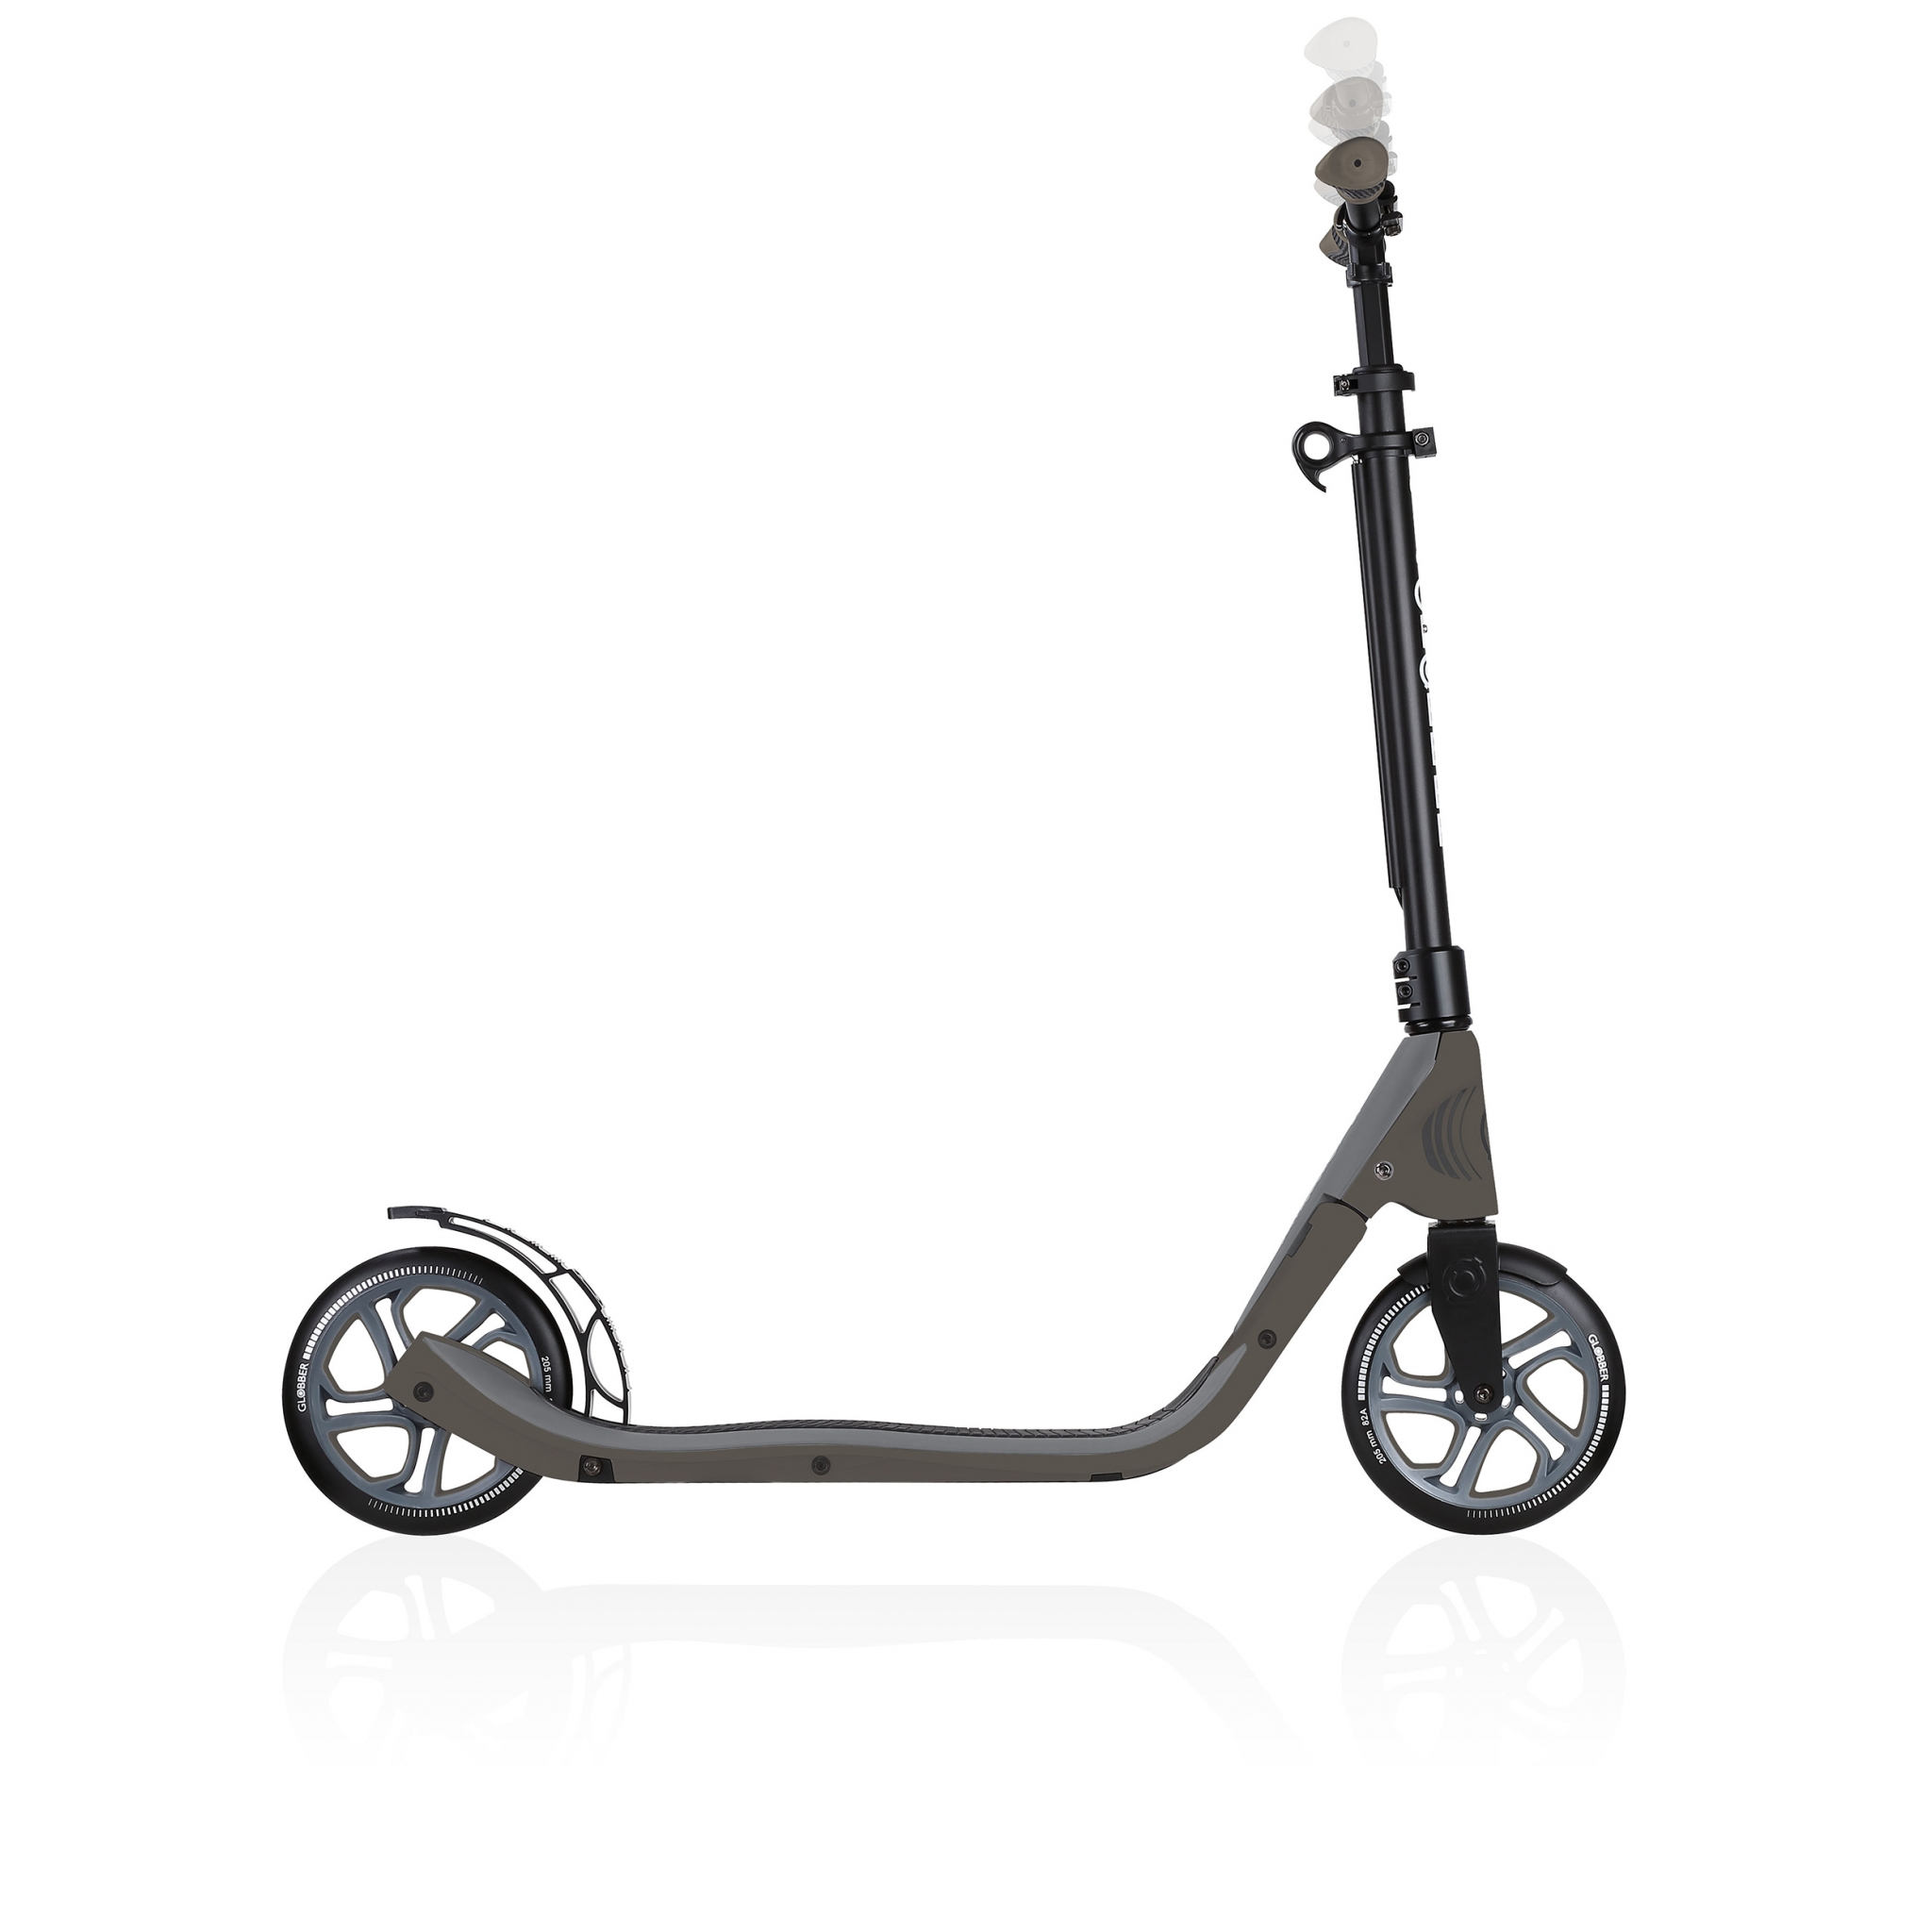 2-wheel foldable scooter for adults - Globber ONE NL 205 3